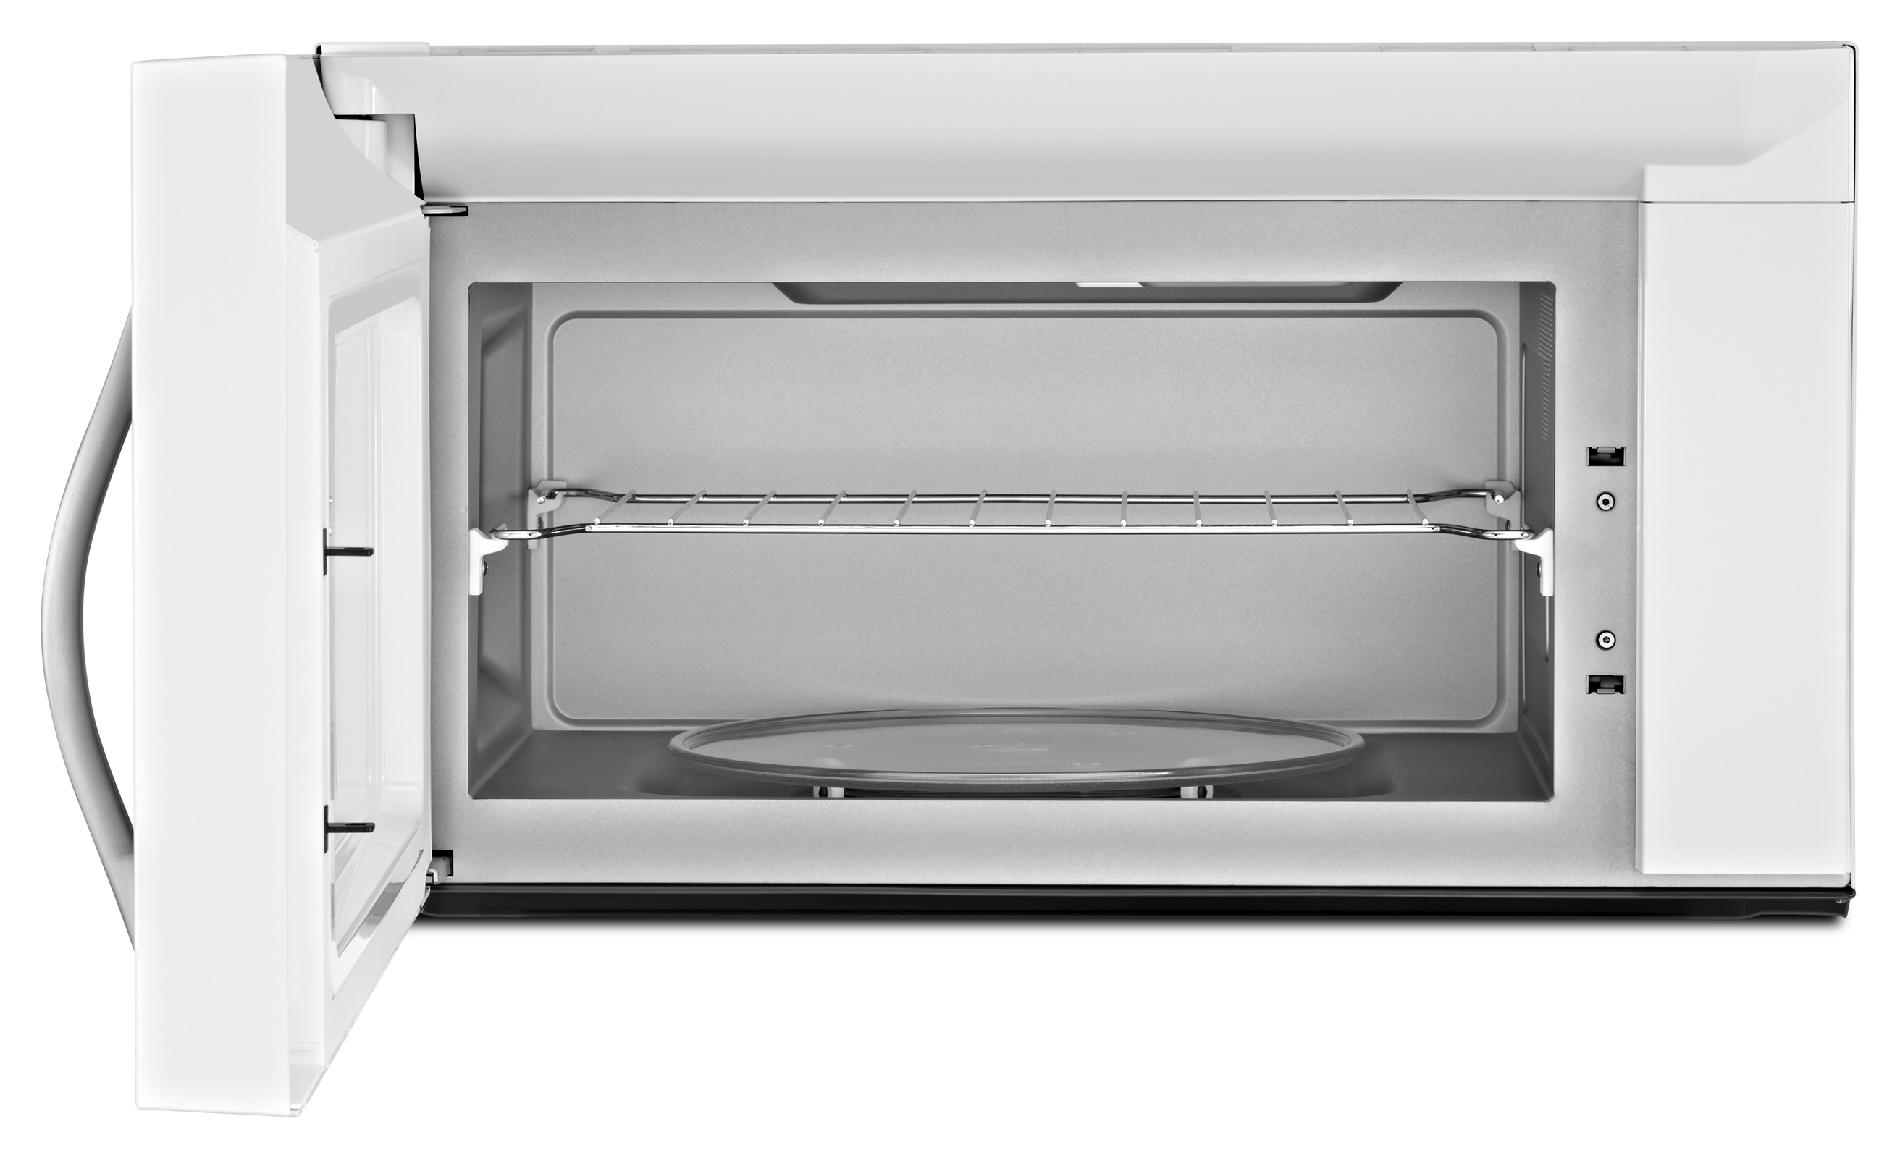 Whirlpool 2.1 cu. ft. Over-the-Range Microwave w/ AccuPop™ Cycle and SteamClean - White w/Silver Handle